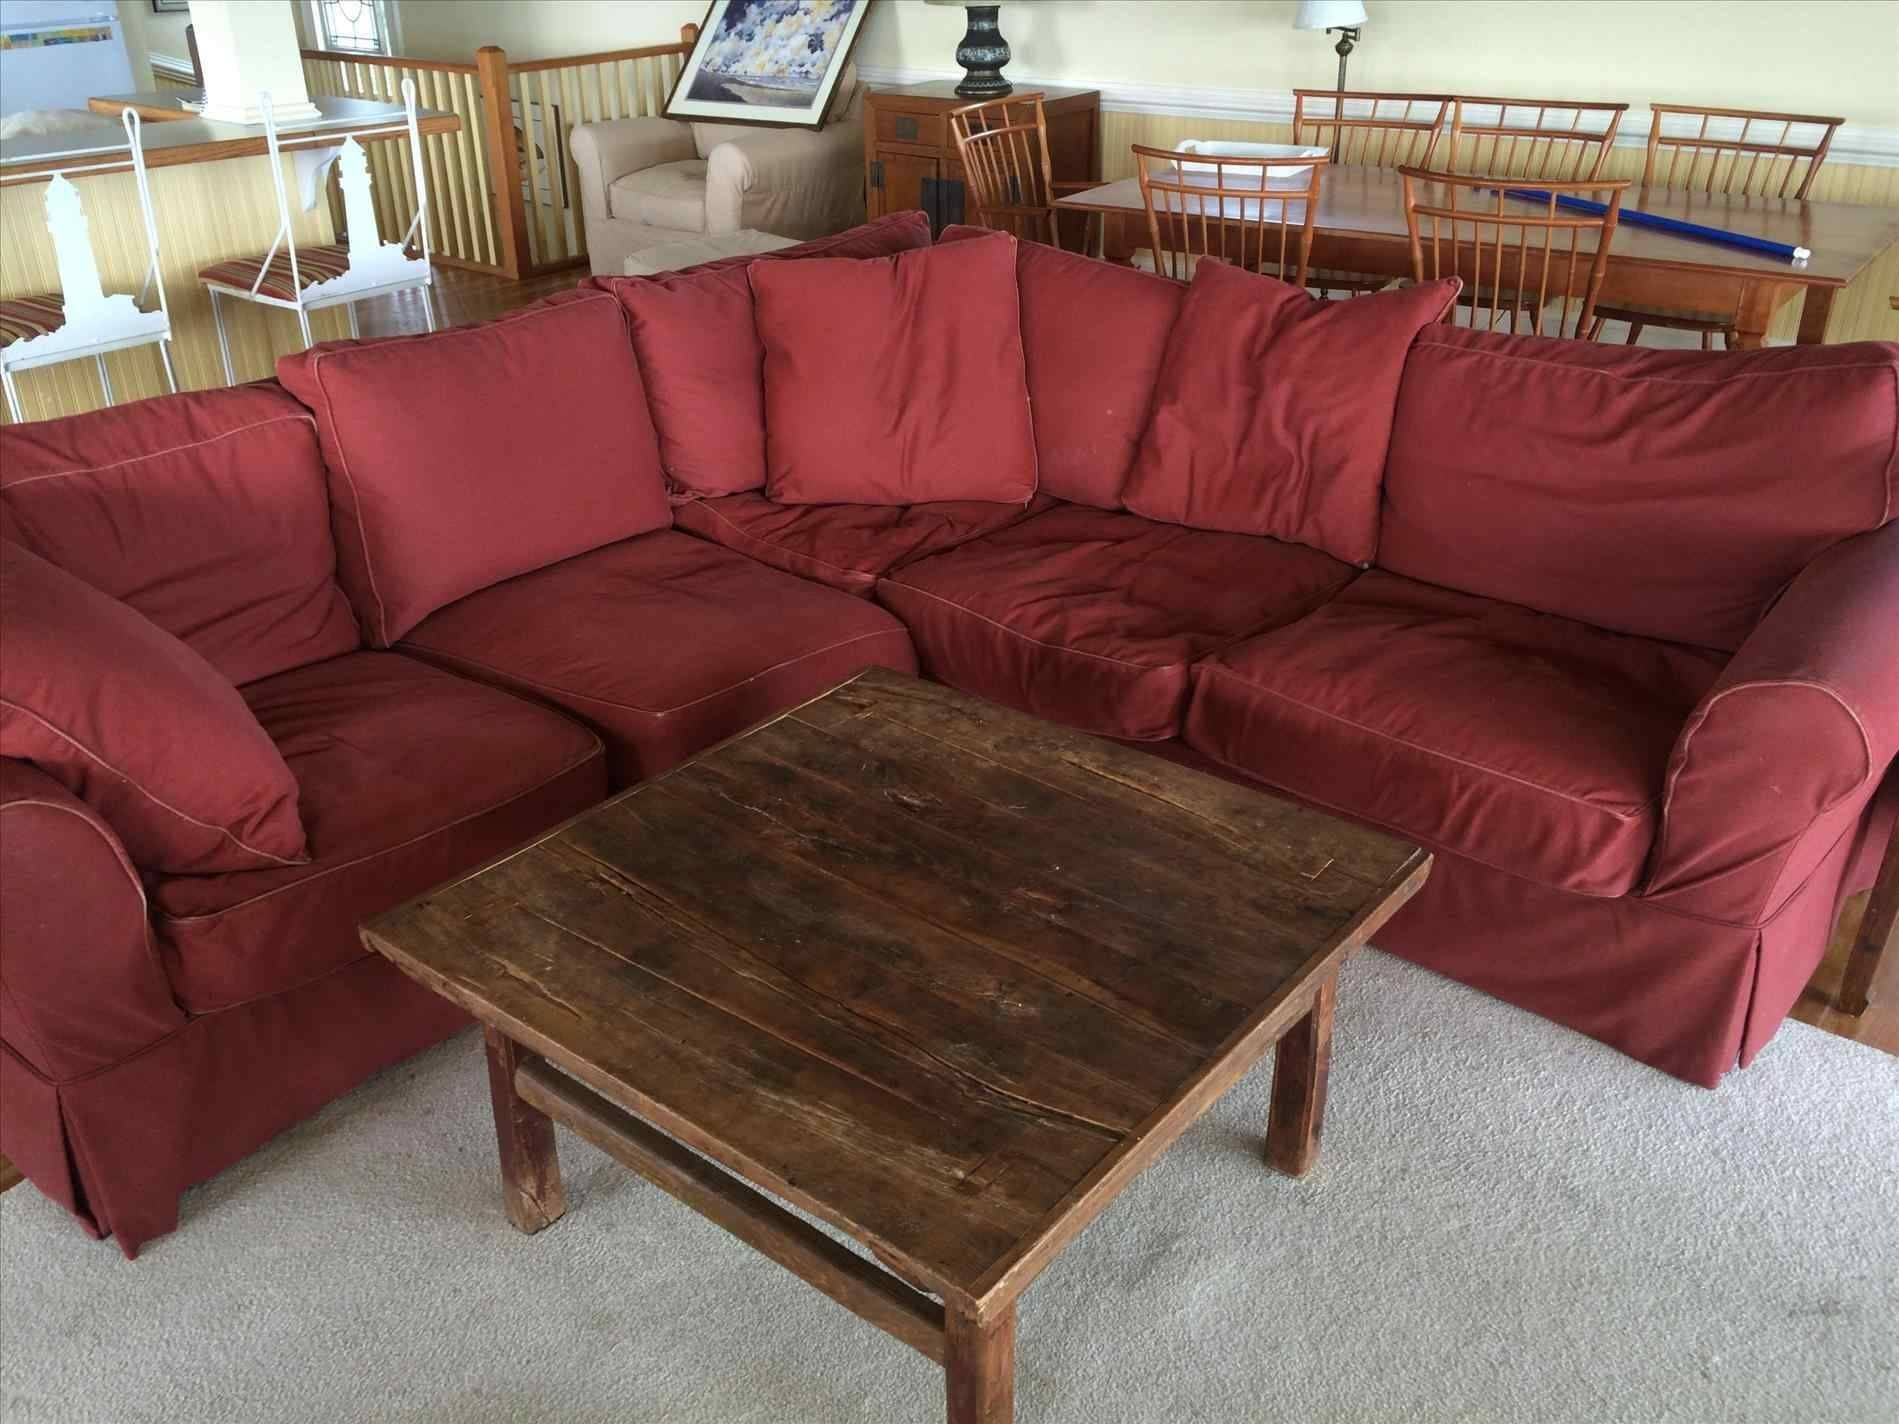 Michaels Furniture Portland - Home Design Ideas And Pictures with regard to Down Filled Sectional Sofa (Image 10 of 25)